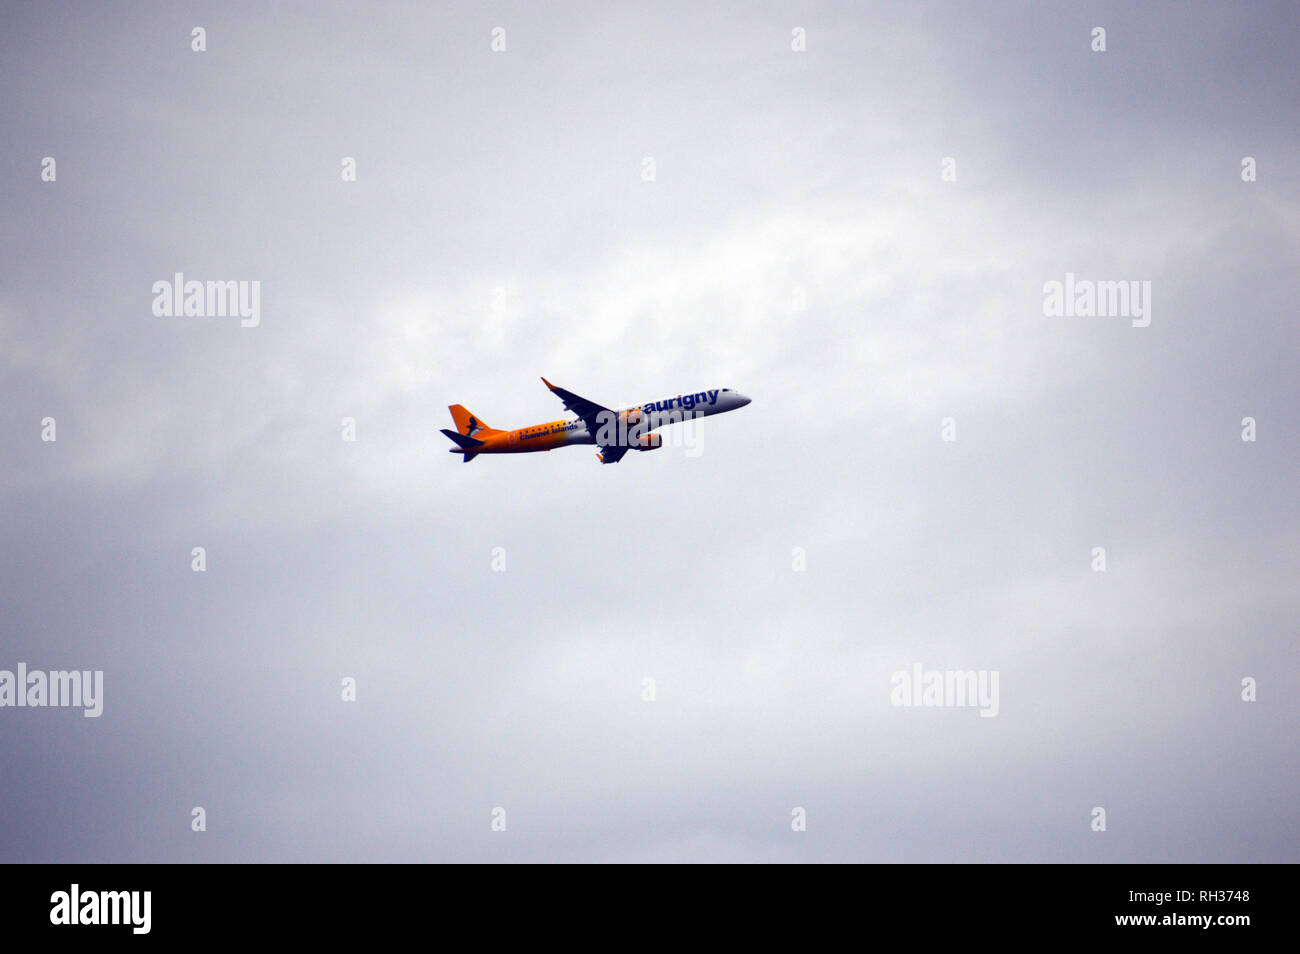 A Embraer 195 Twin Jet Engine Aurigny Plane Taking Off from the Airport on Guernsey, Channel Islands.UK. - Stock Image